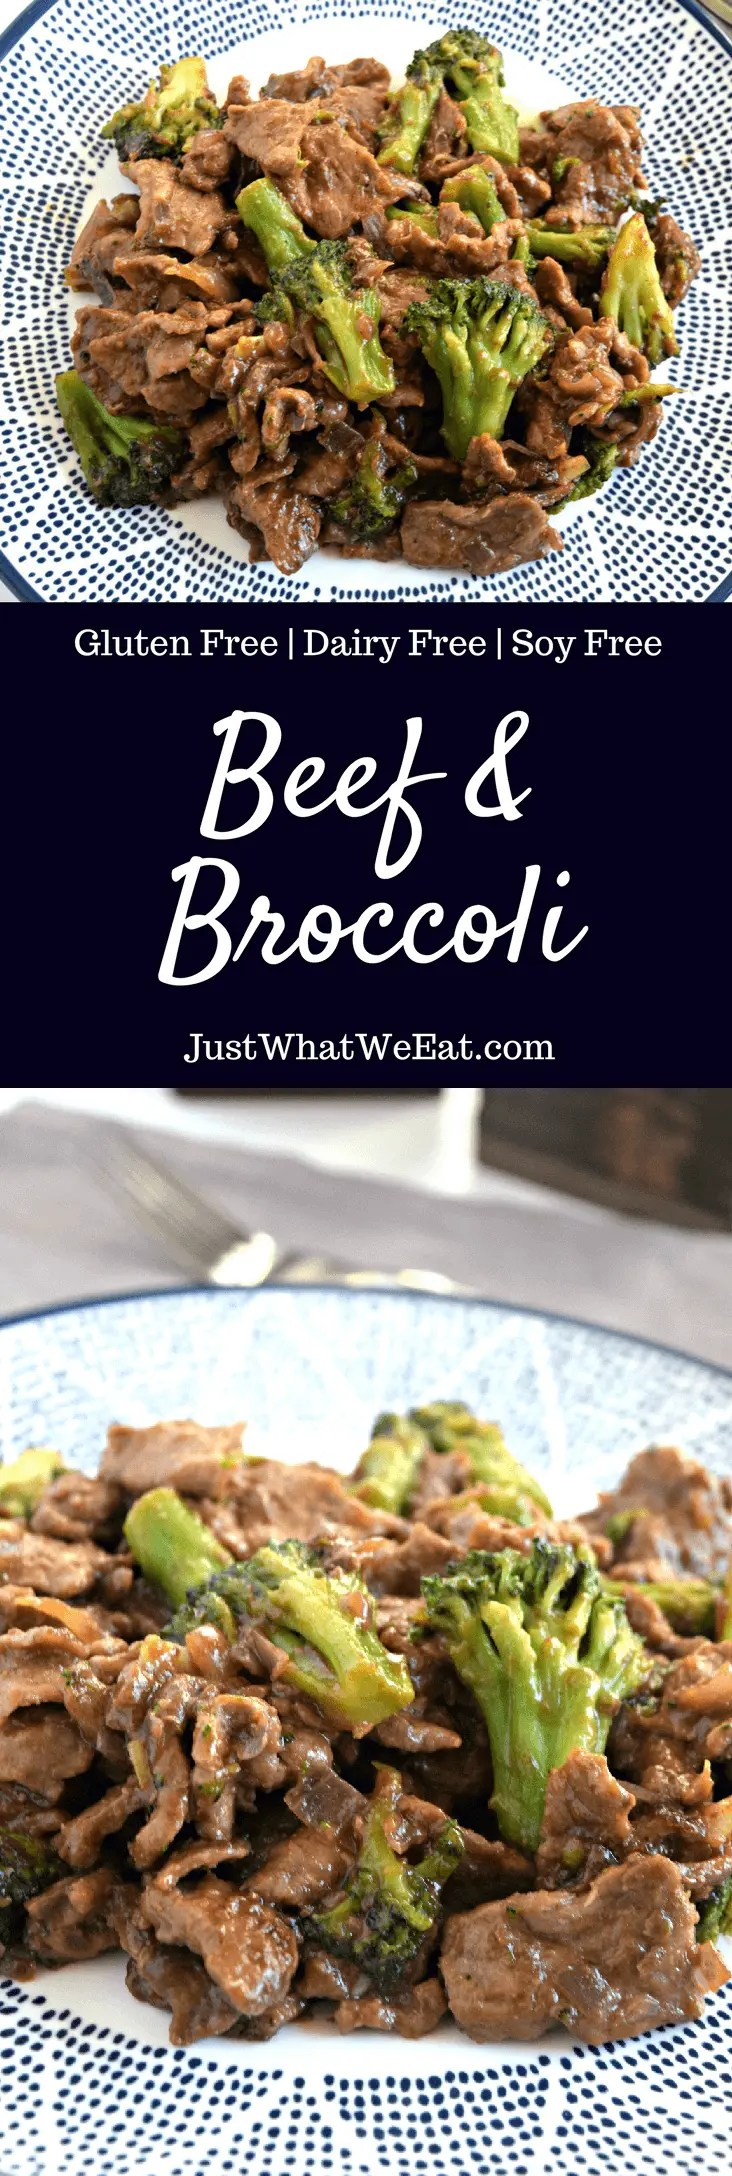 Beef and Broccoli - Gluten Free, Dairy Free, & Soy Free